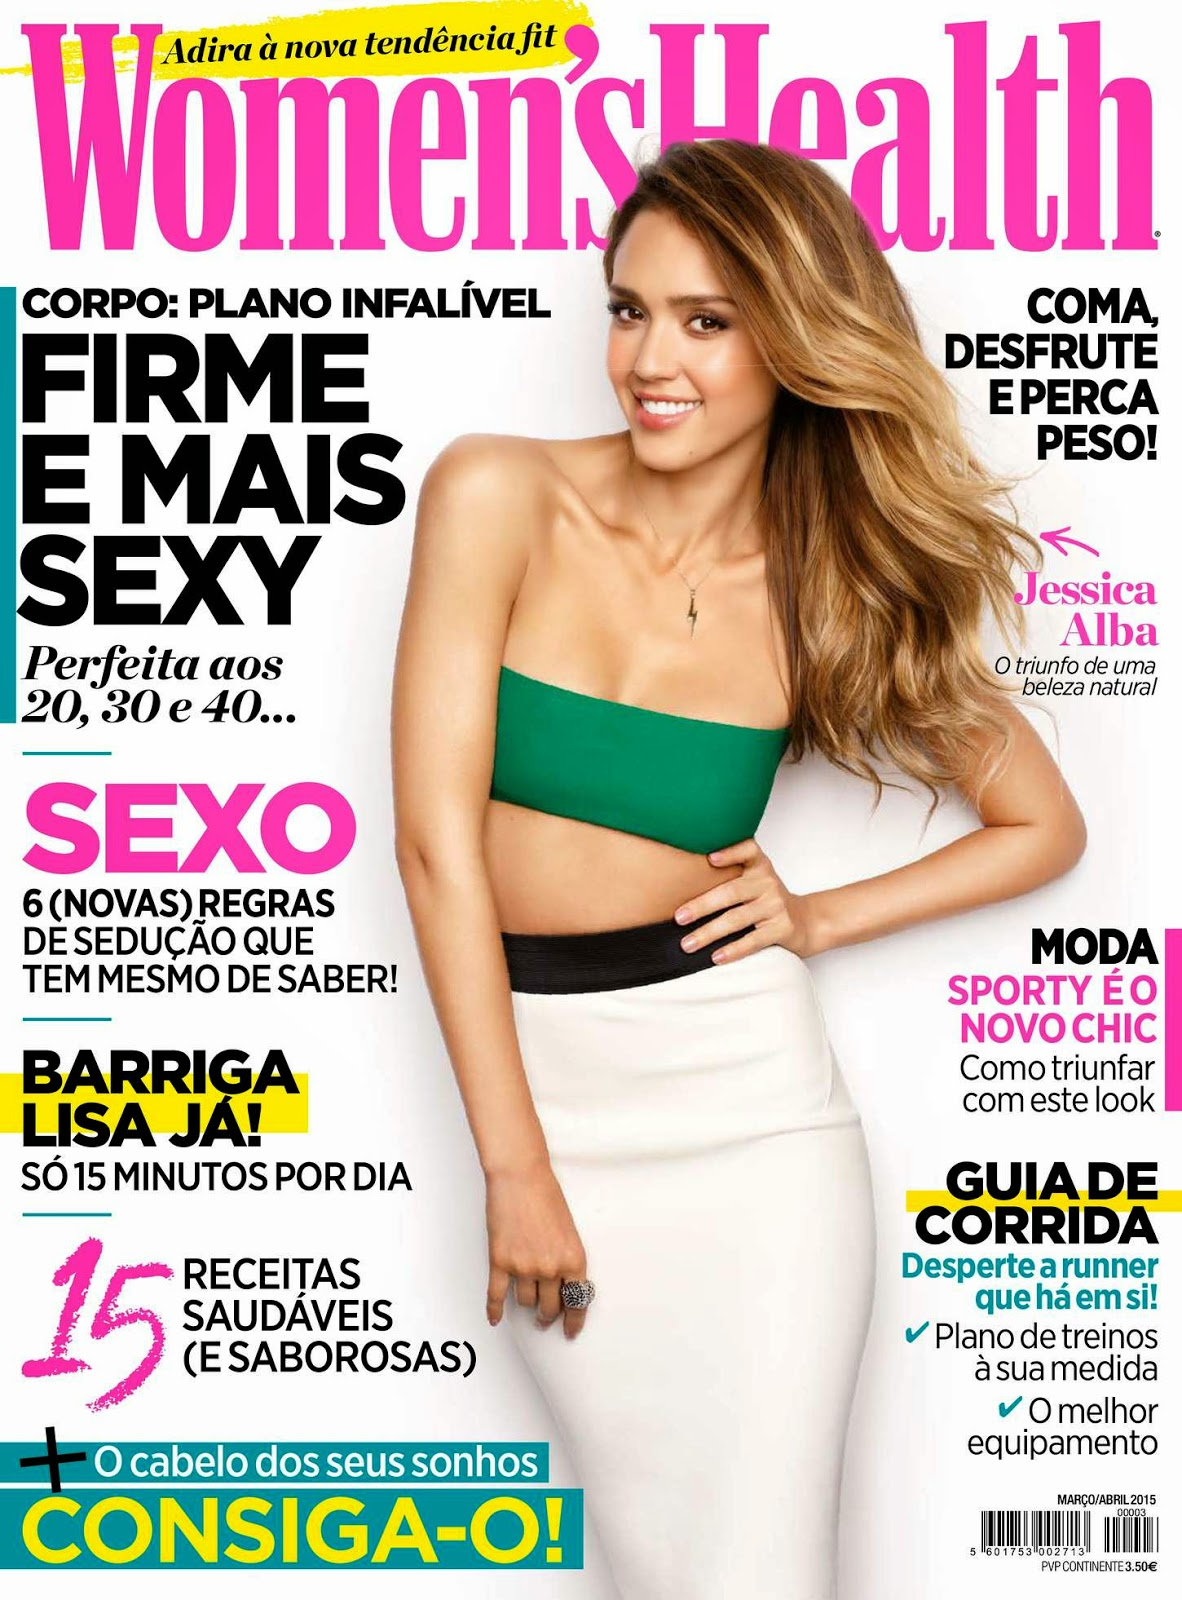 Actress, Model, Businesswoman @ Jessica Alba - Women's Health Portugal, March/April 2015